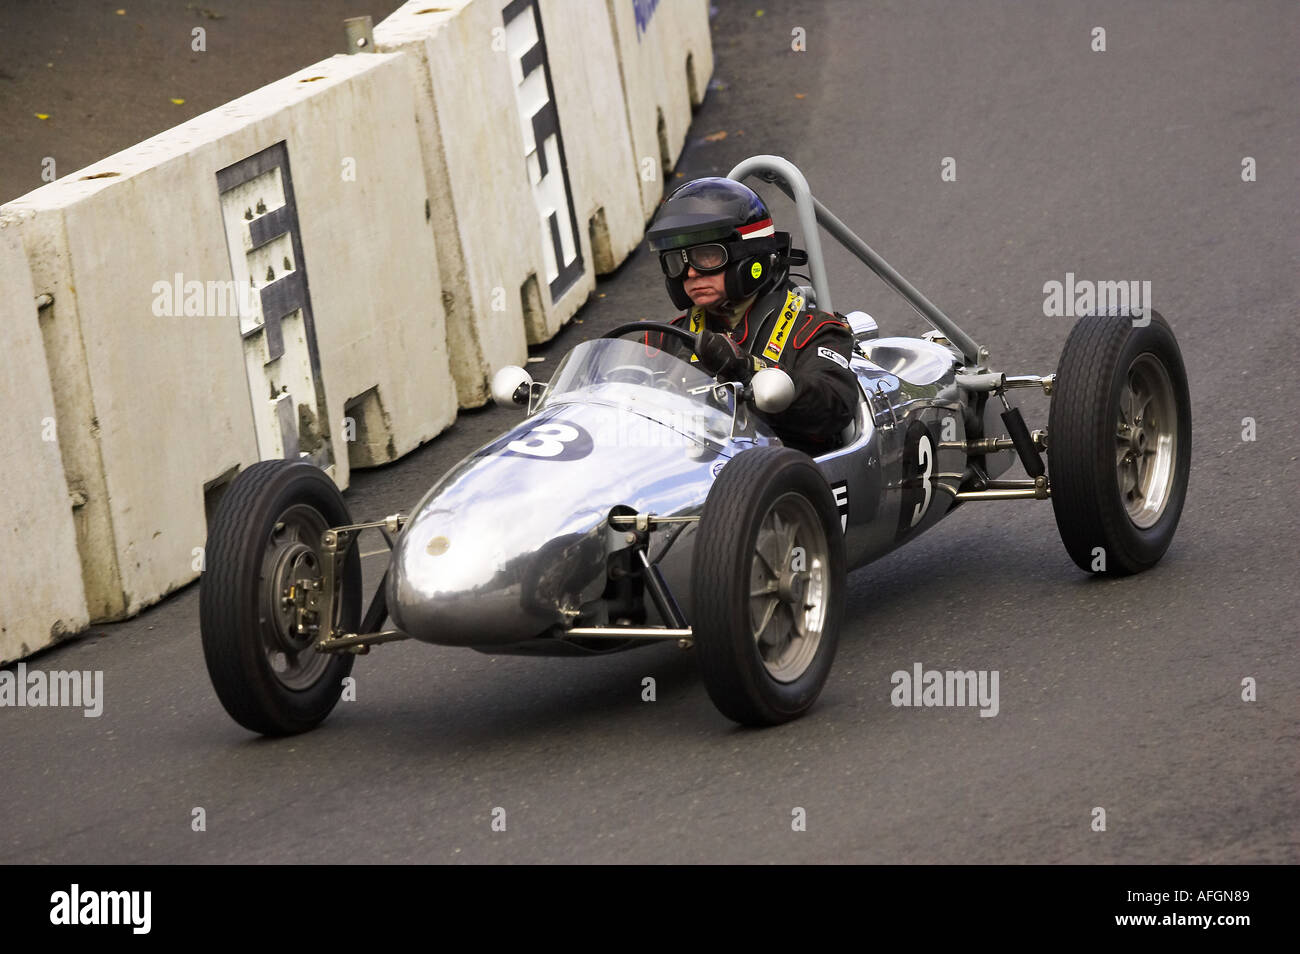 Vintage Car Racing Stock Photos & Vintage Car Racing Stock Images ...